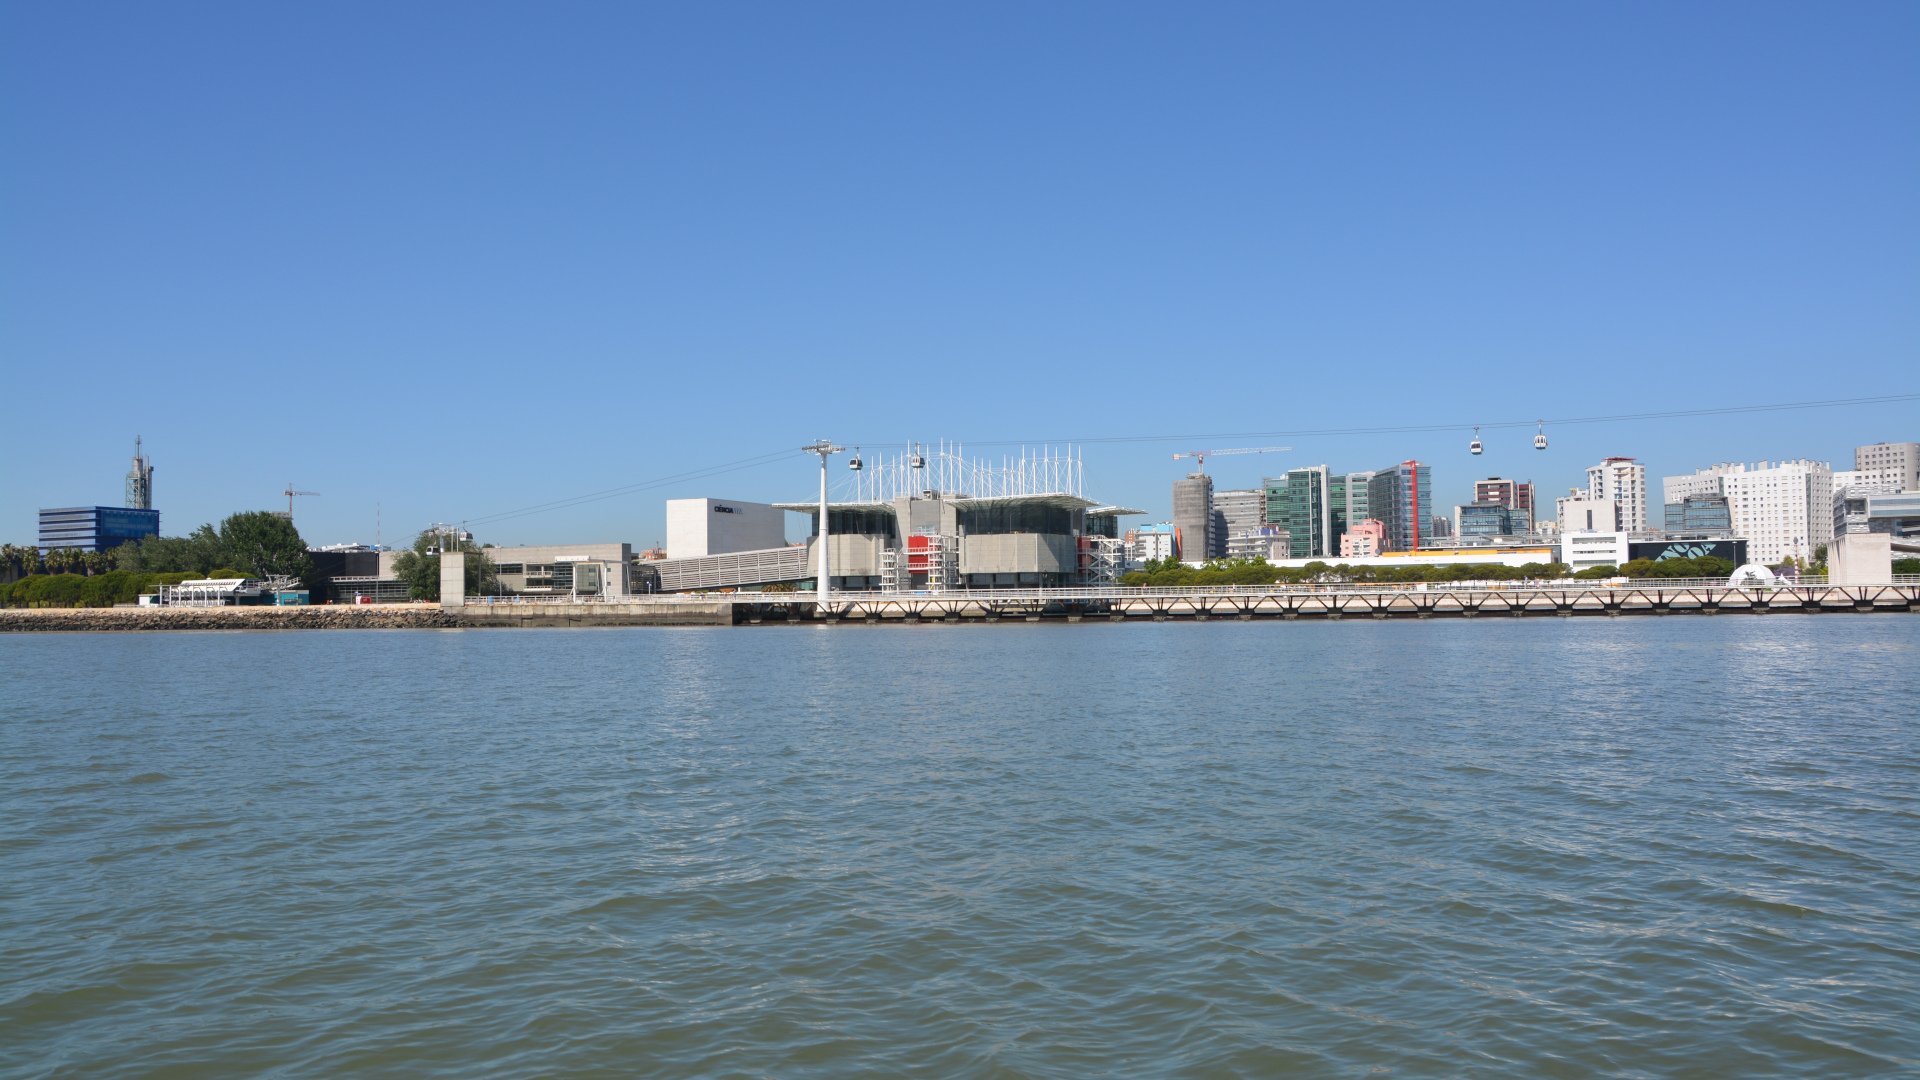 Lisbon Oceanarium seen from Tagus Estuary